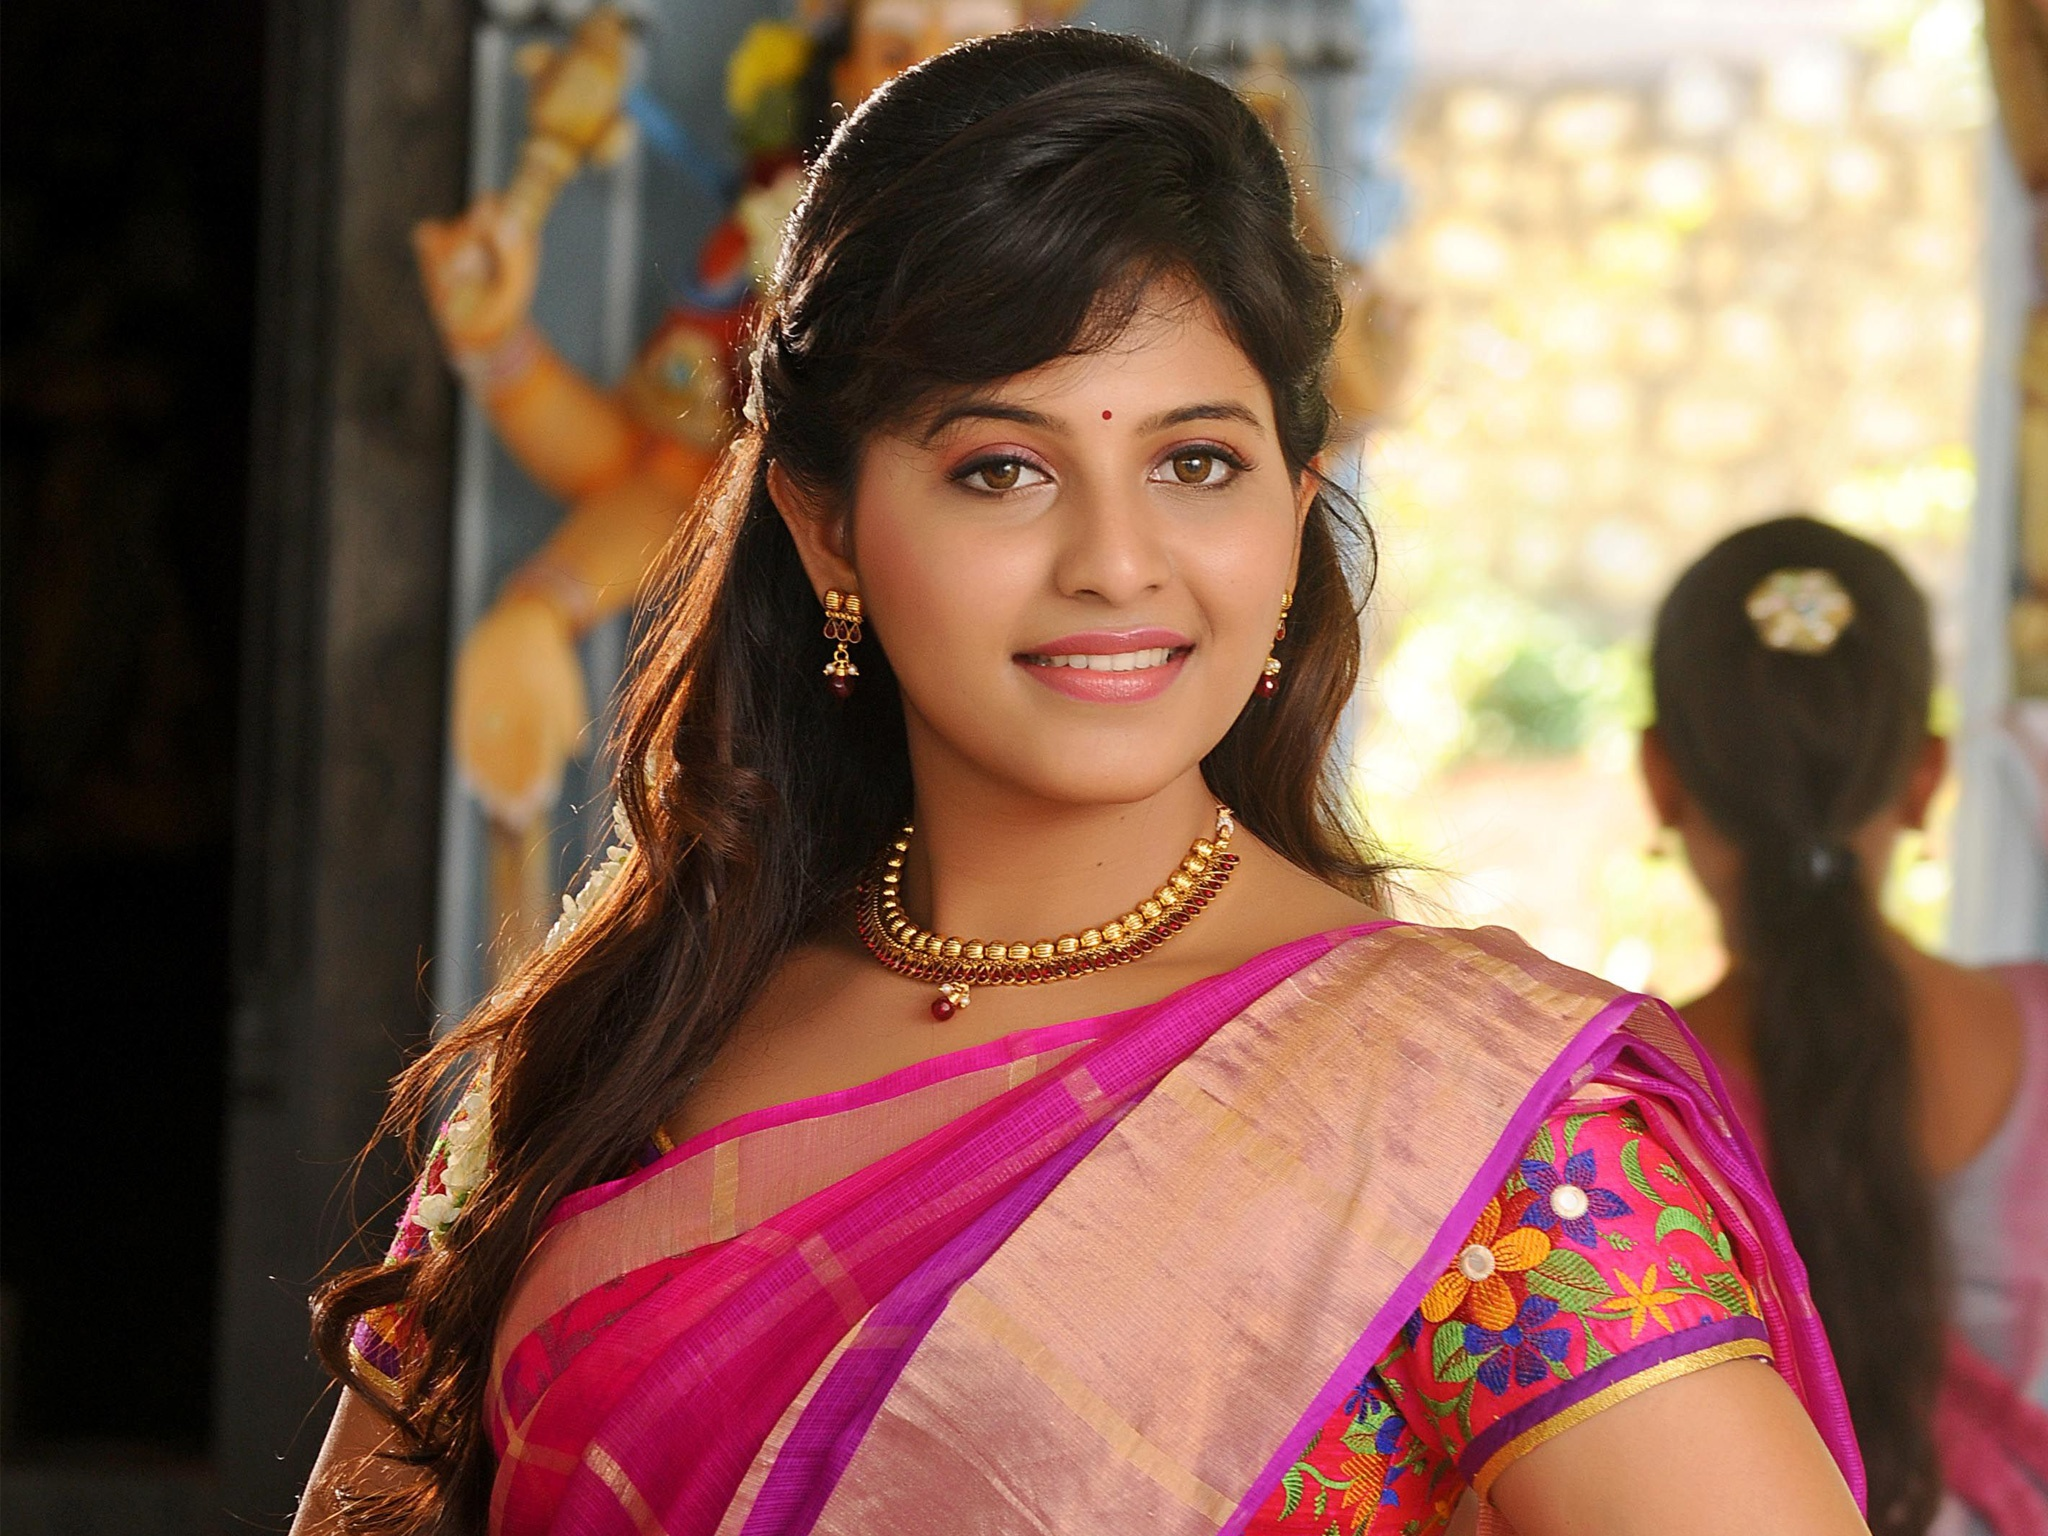 Anjali Tamil Actress Wallpapers In Jpg Format For Free